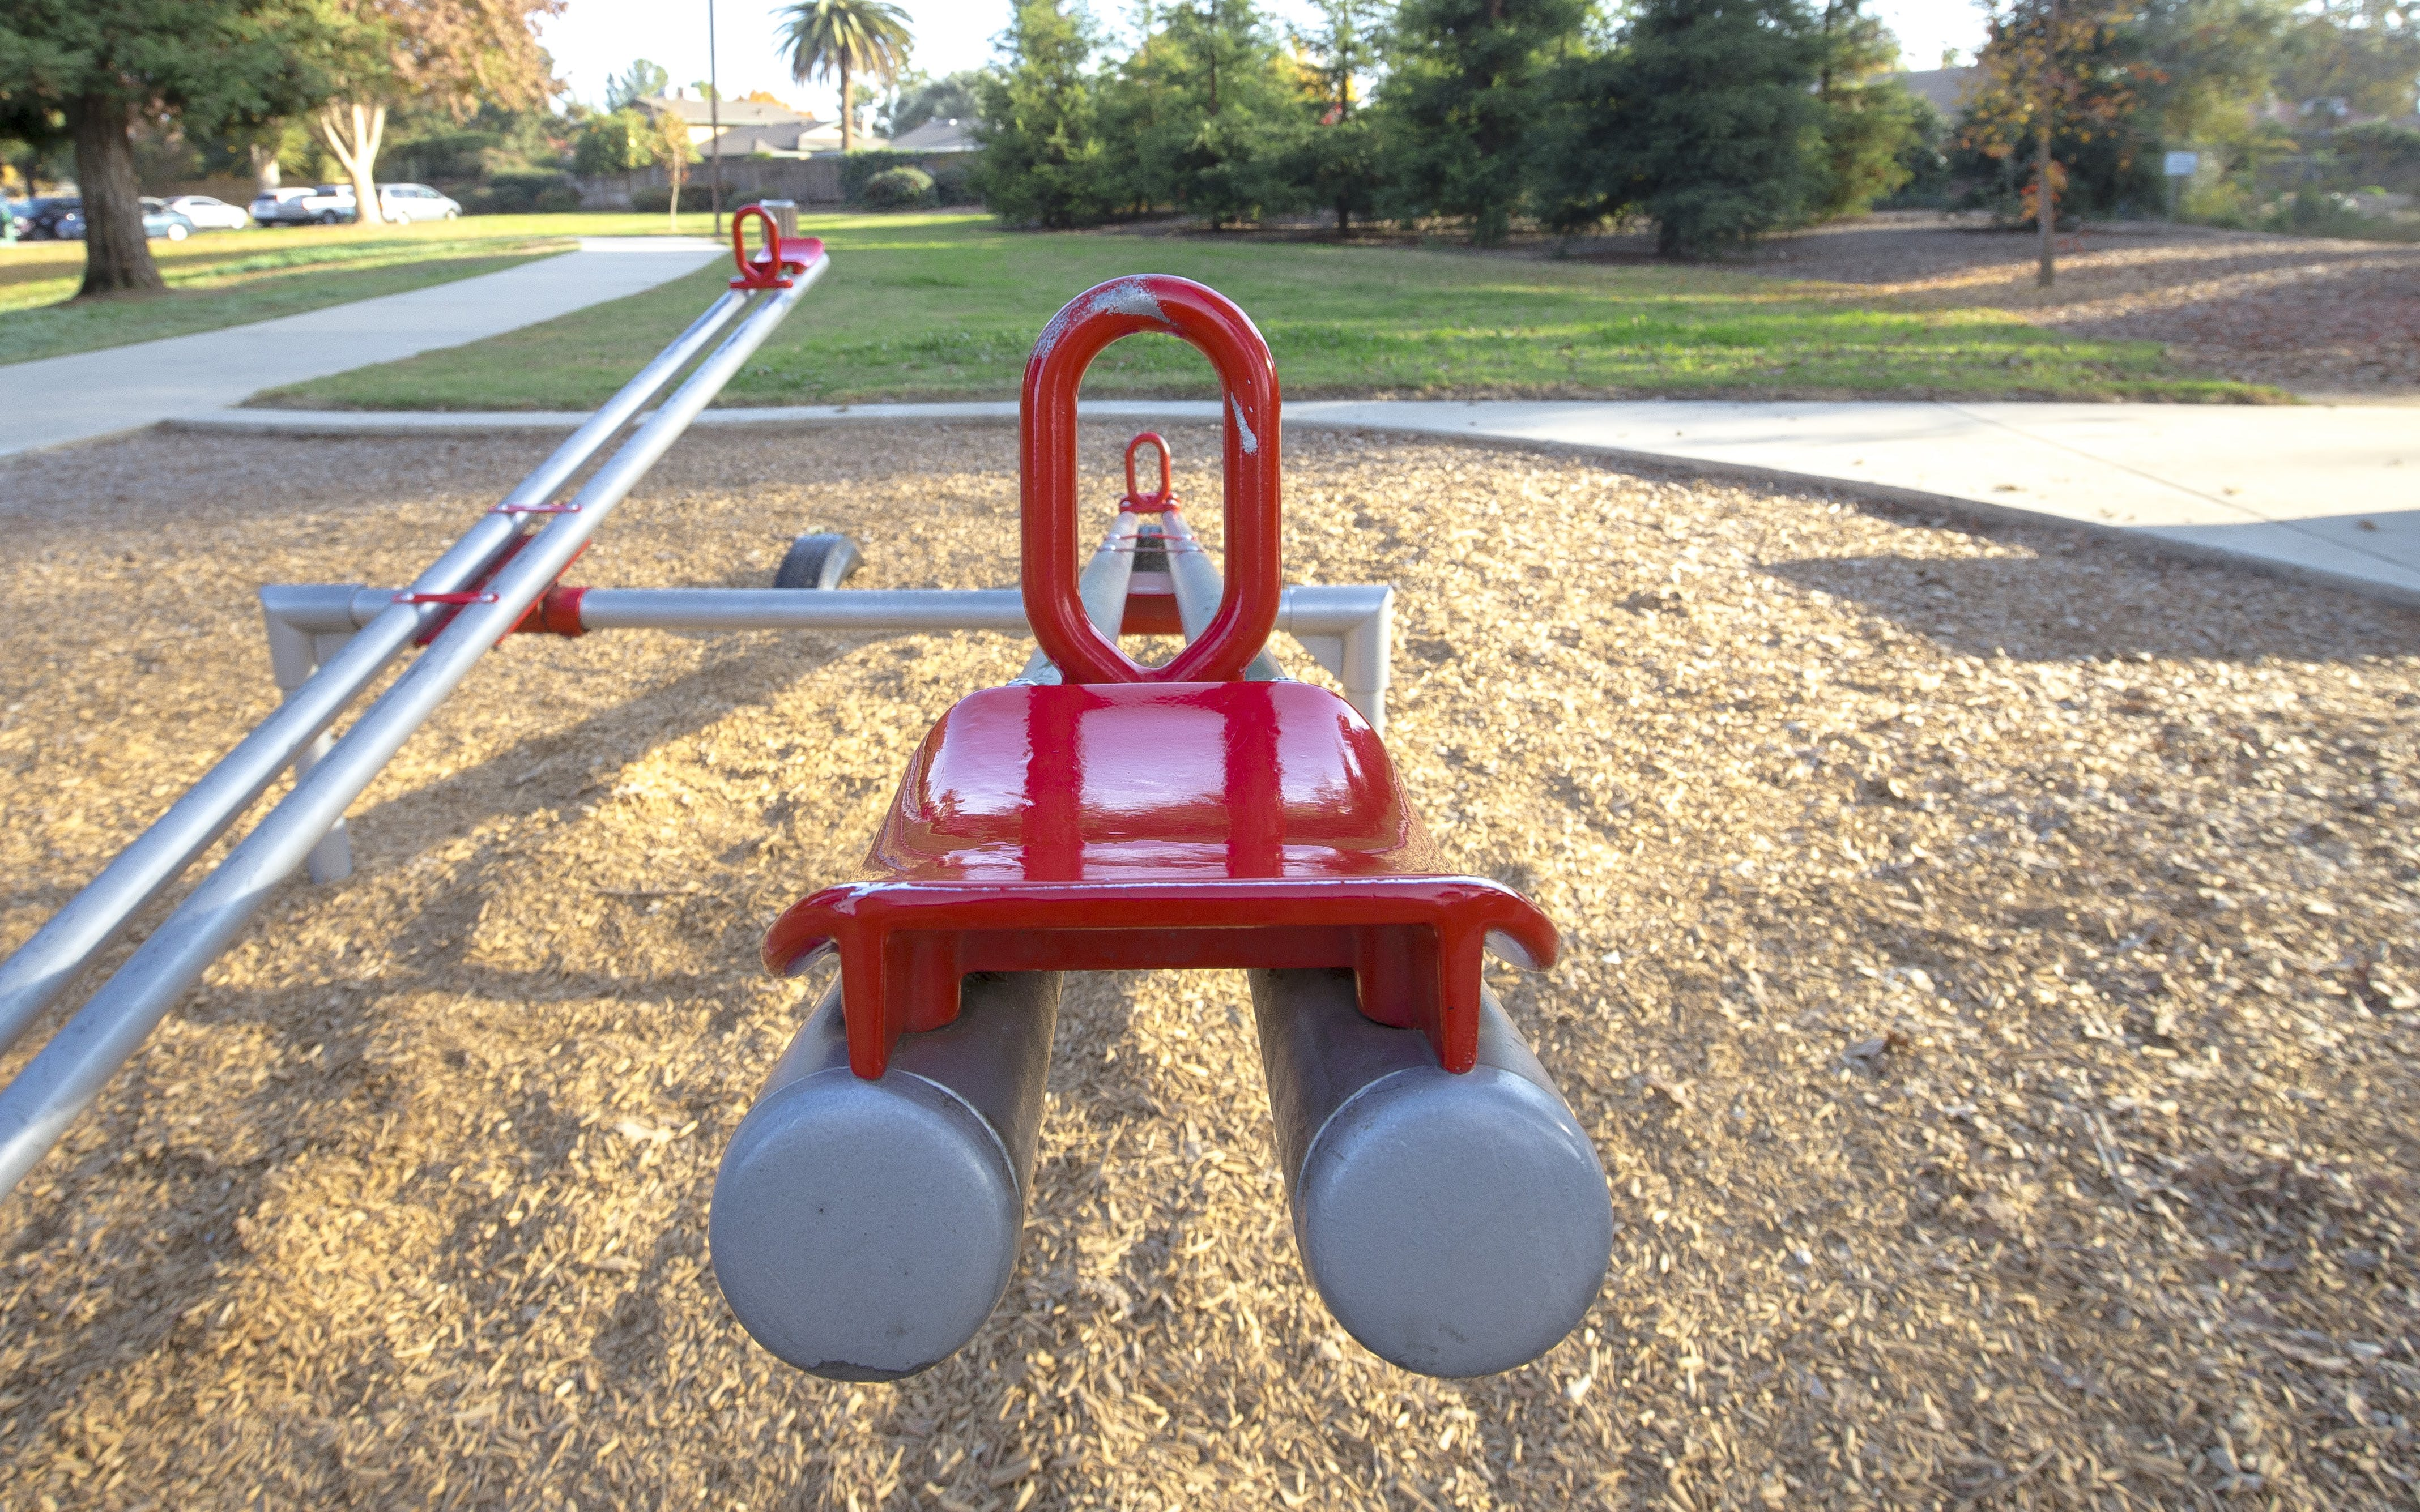 Red and Gray Seesaw in the Playground